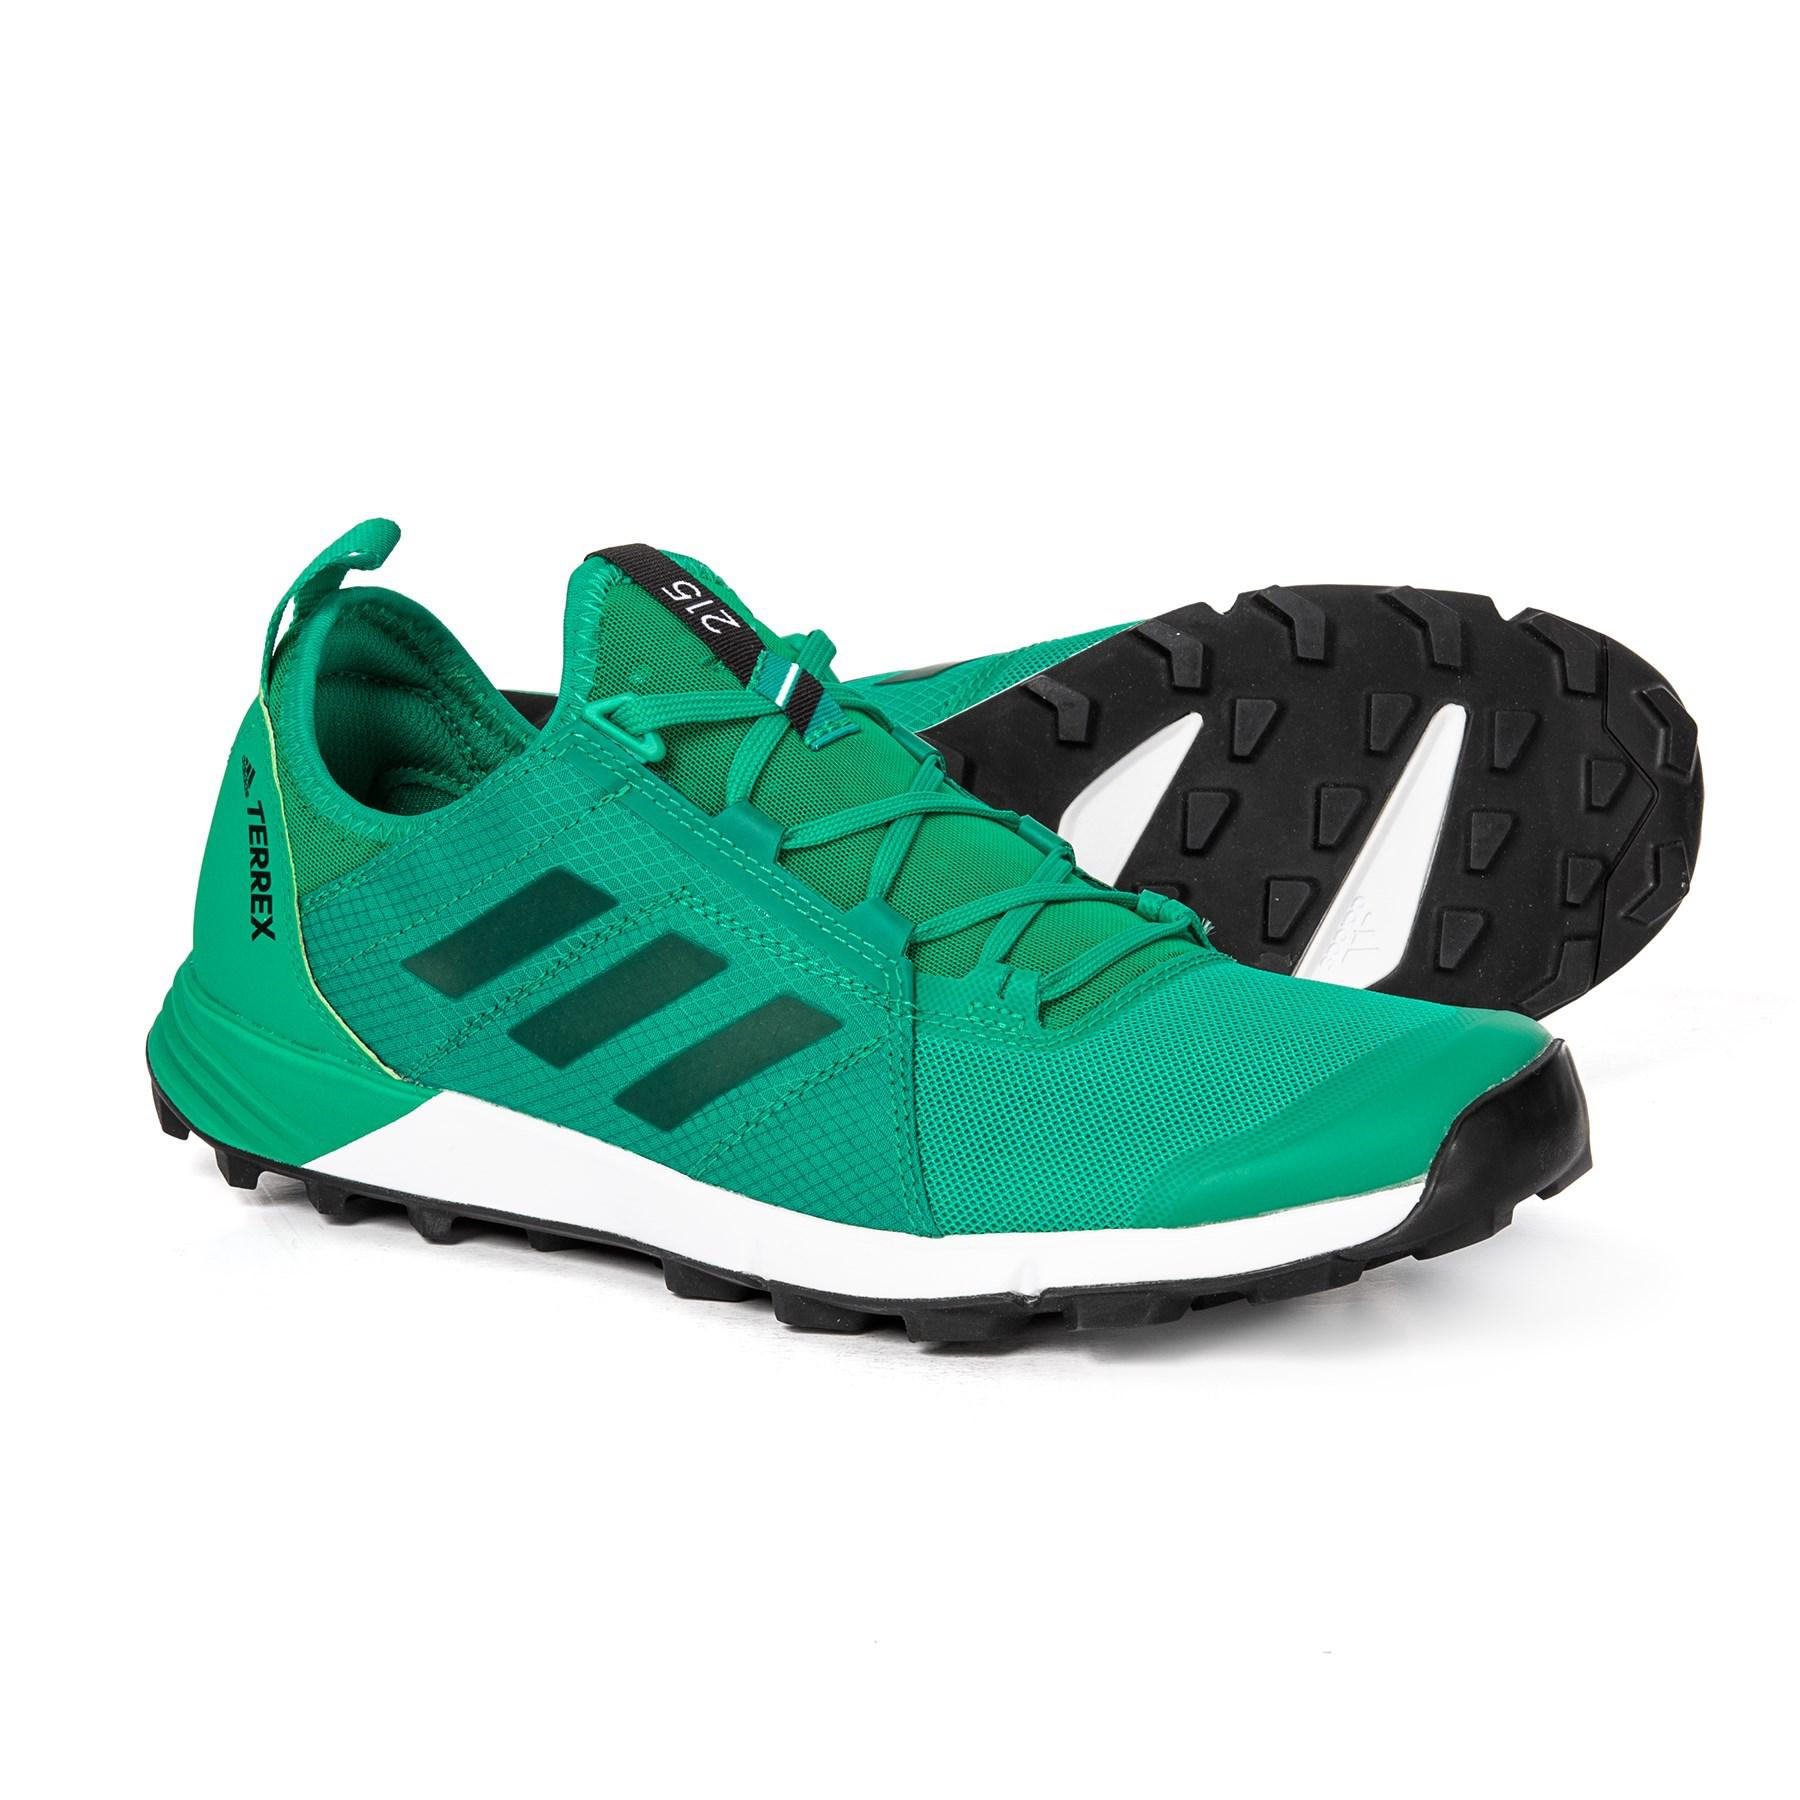 2a5732375a54 Lyst - Adidas Outdoor Terrex Agravic Speed Trail Running Shoes (for ...